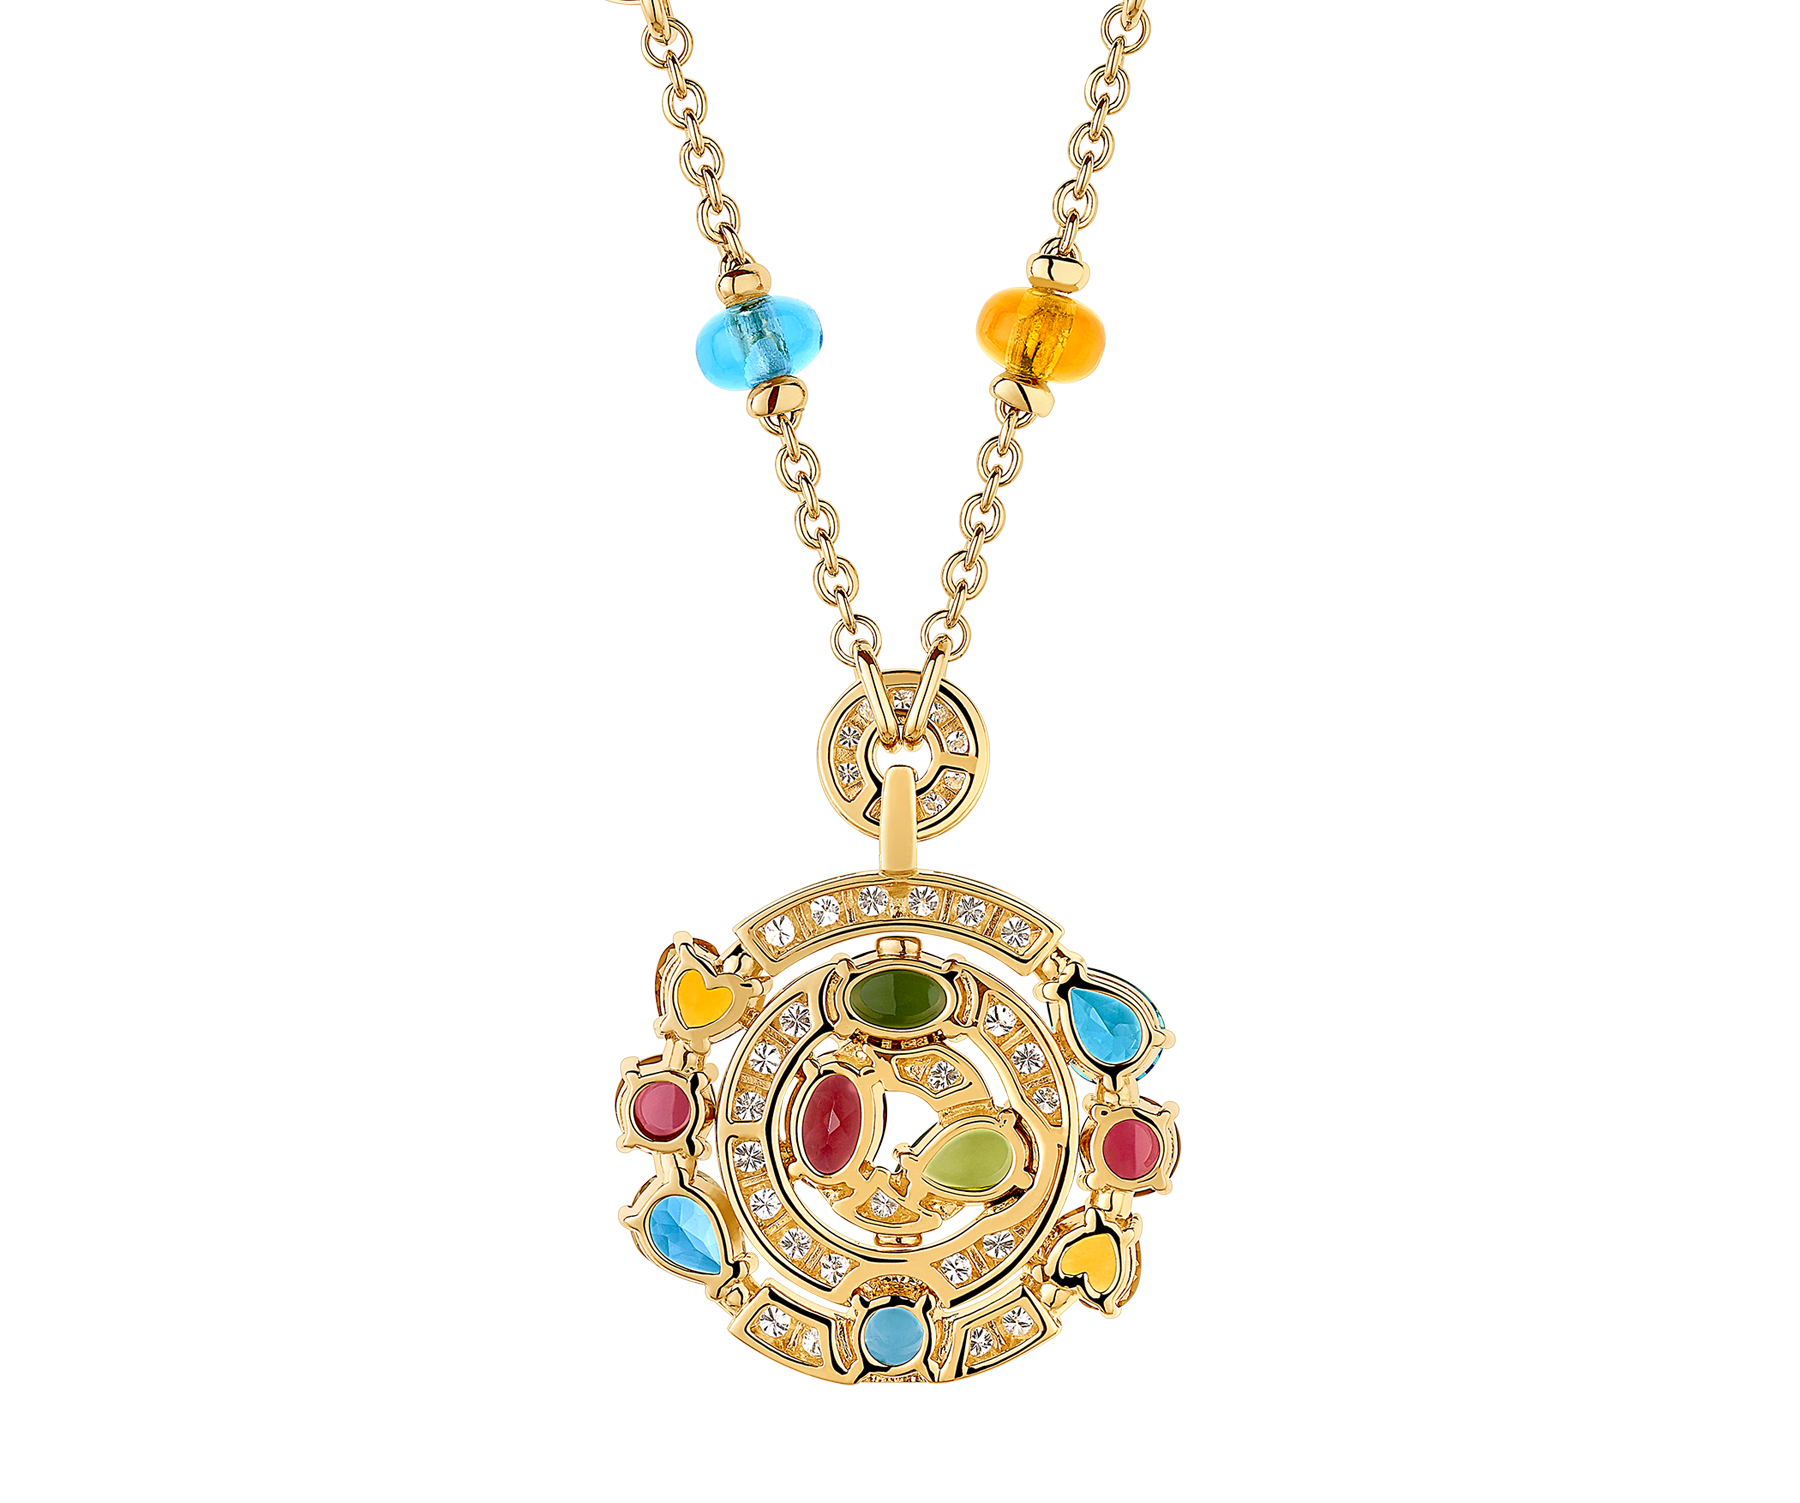 Astrale 18 kt yellow gold large pendant necklace set with blue topazes, amethysts, green tourmalines, peridots, citrine quartz, rhodolite garnets and pavé diamonds 338229 image 3